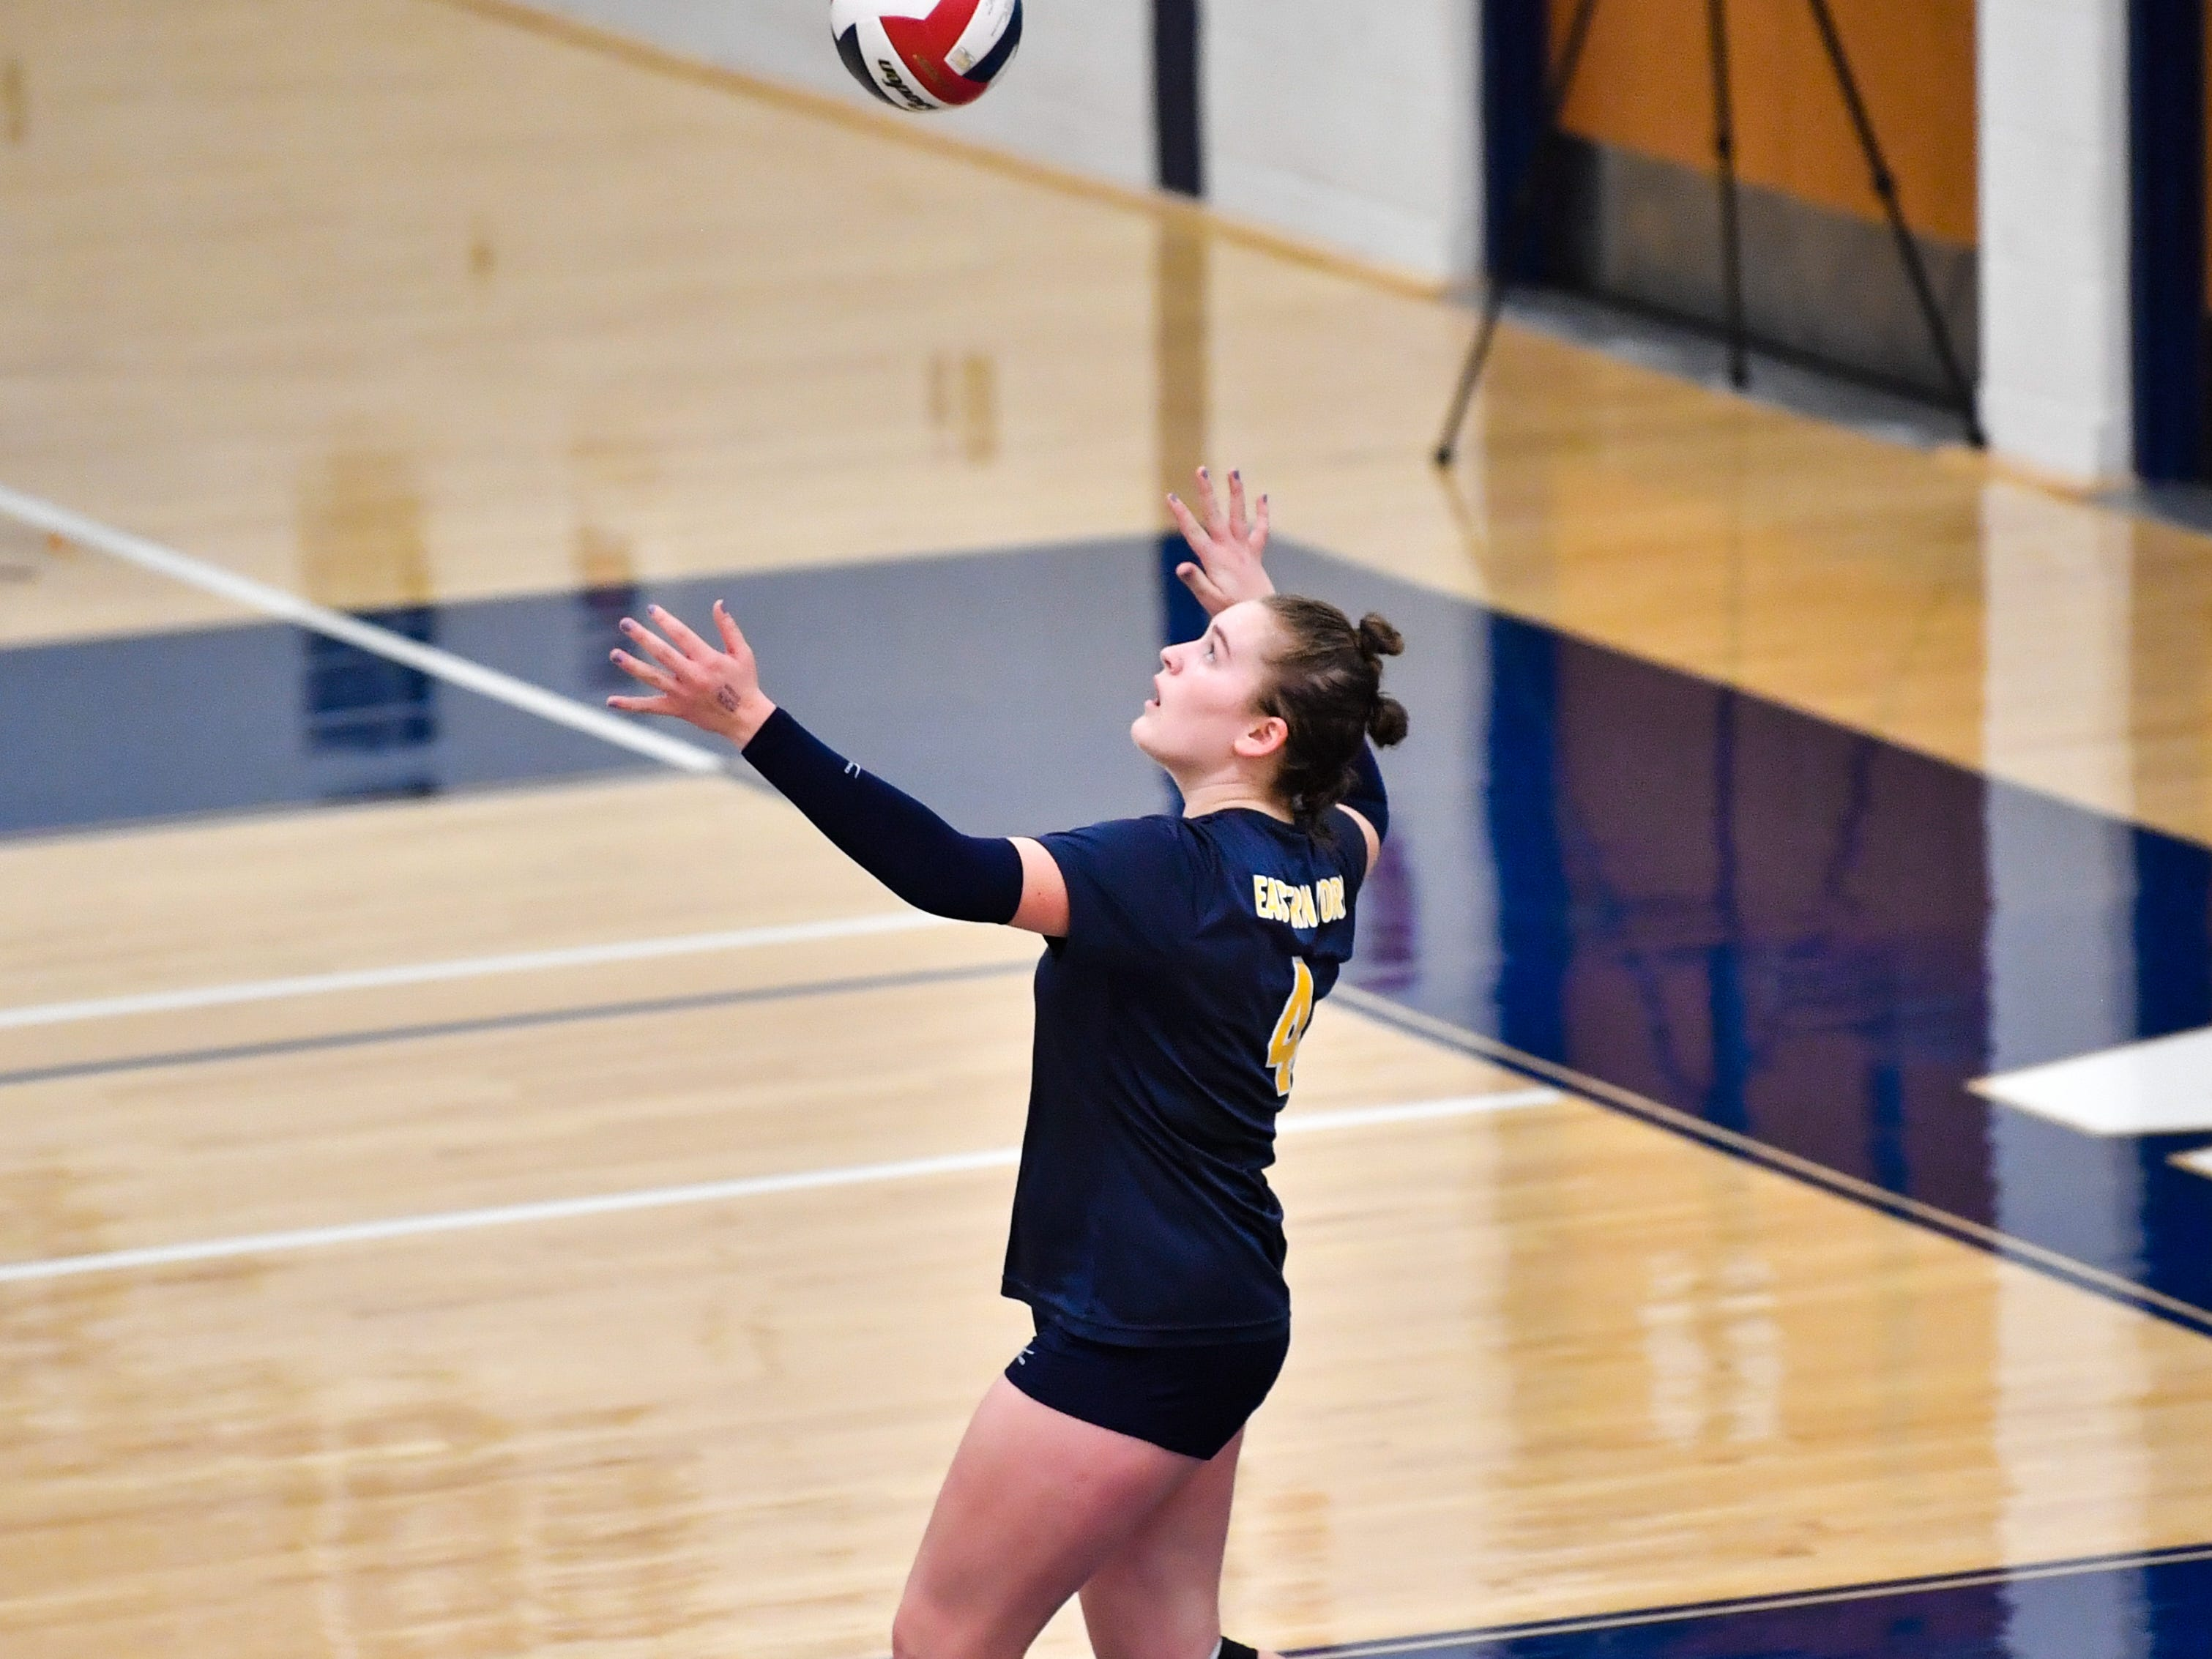 Sarah Moore (4) is up to serve during the District 3 Class 3A girls' volleyball quarterfinals between West York and Eastern York at West York High School, October 30, 2018. The Bulldogs defeated the Golden Knights 3-0.